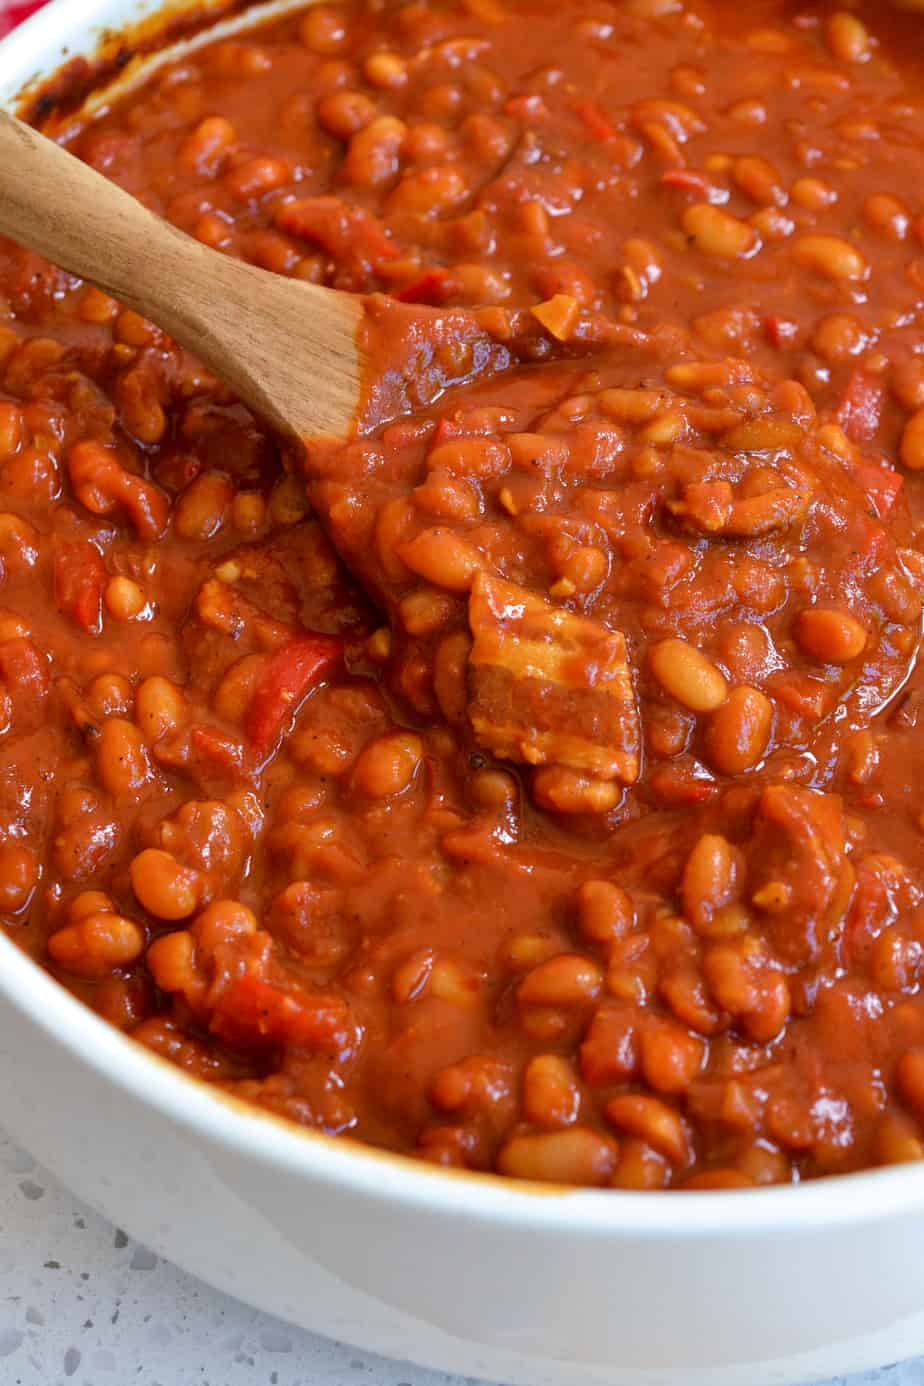 A spoon full of baked beans